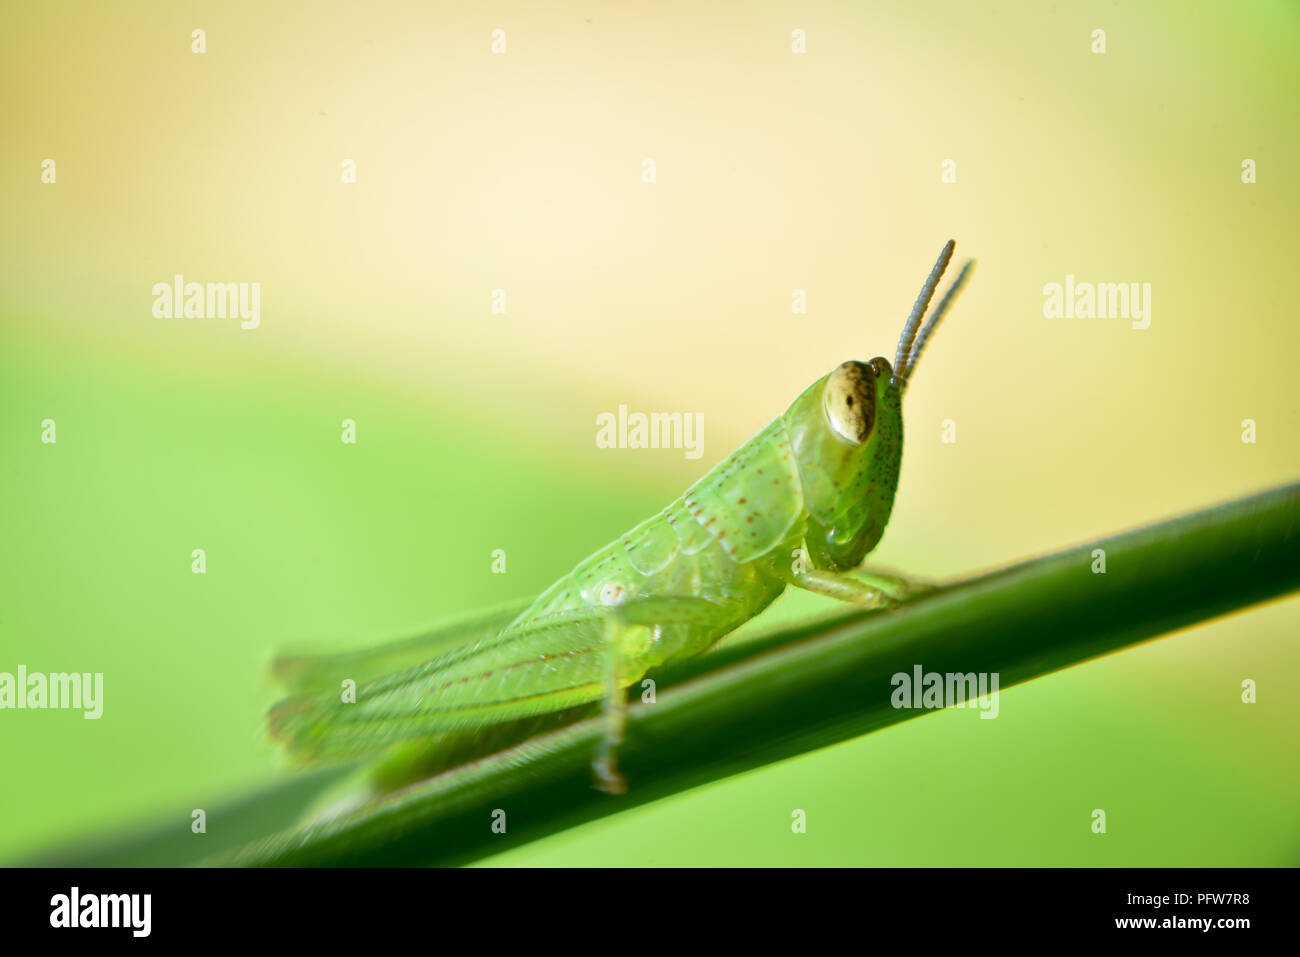 green grasshopper on grass cane on green blurry background, macro photography close up grasshopper - Stock Image